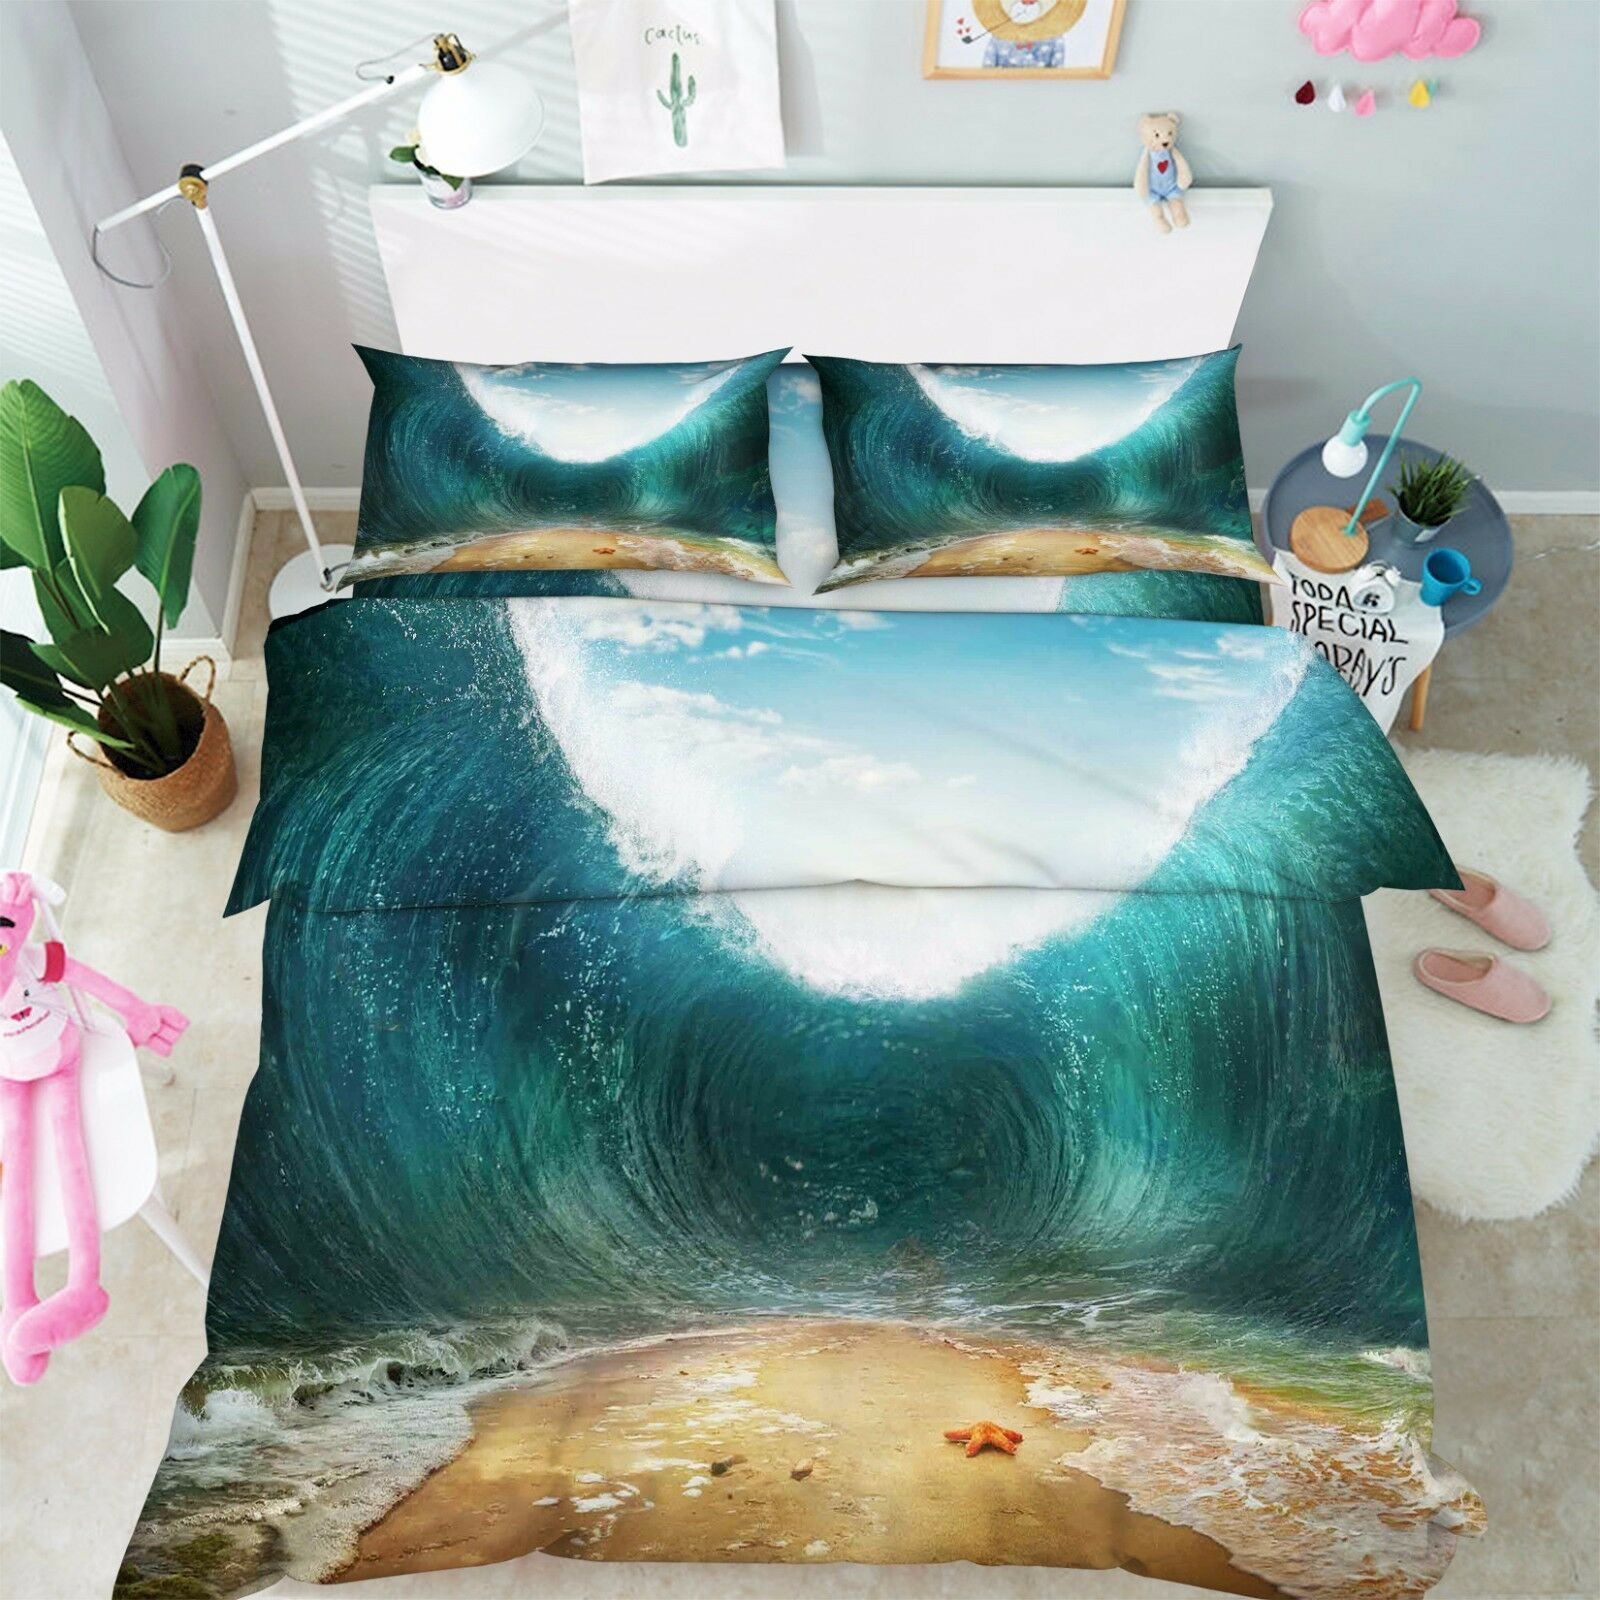 3D View Waves 877 Bed Pillowcases Quilt Duvet Cover Set Single Queen UK Kyra